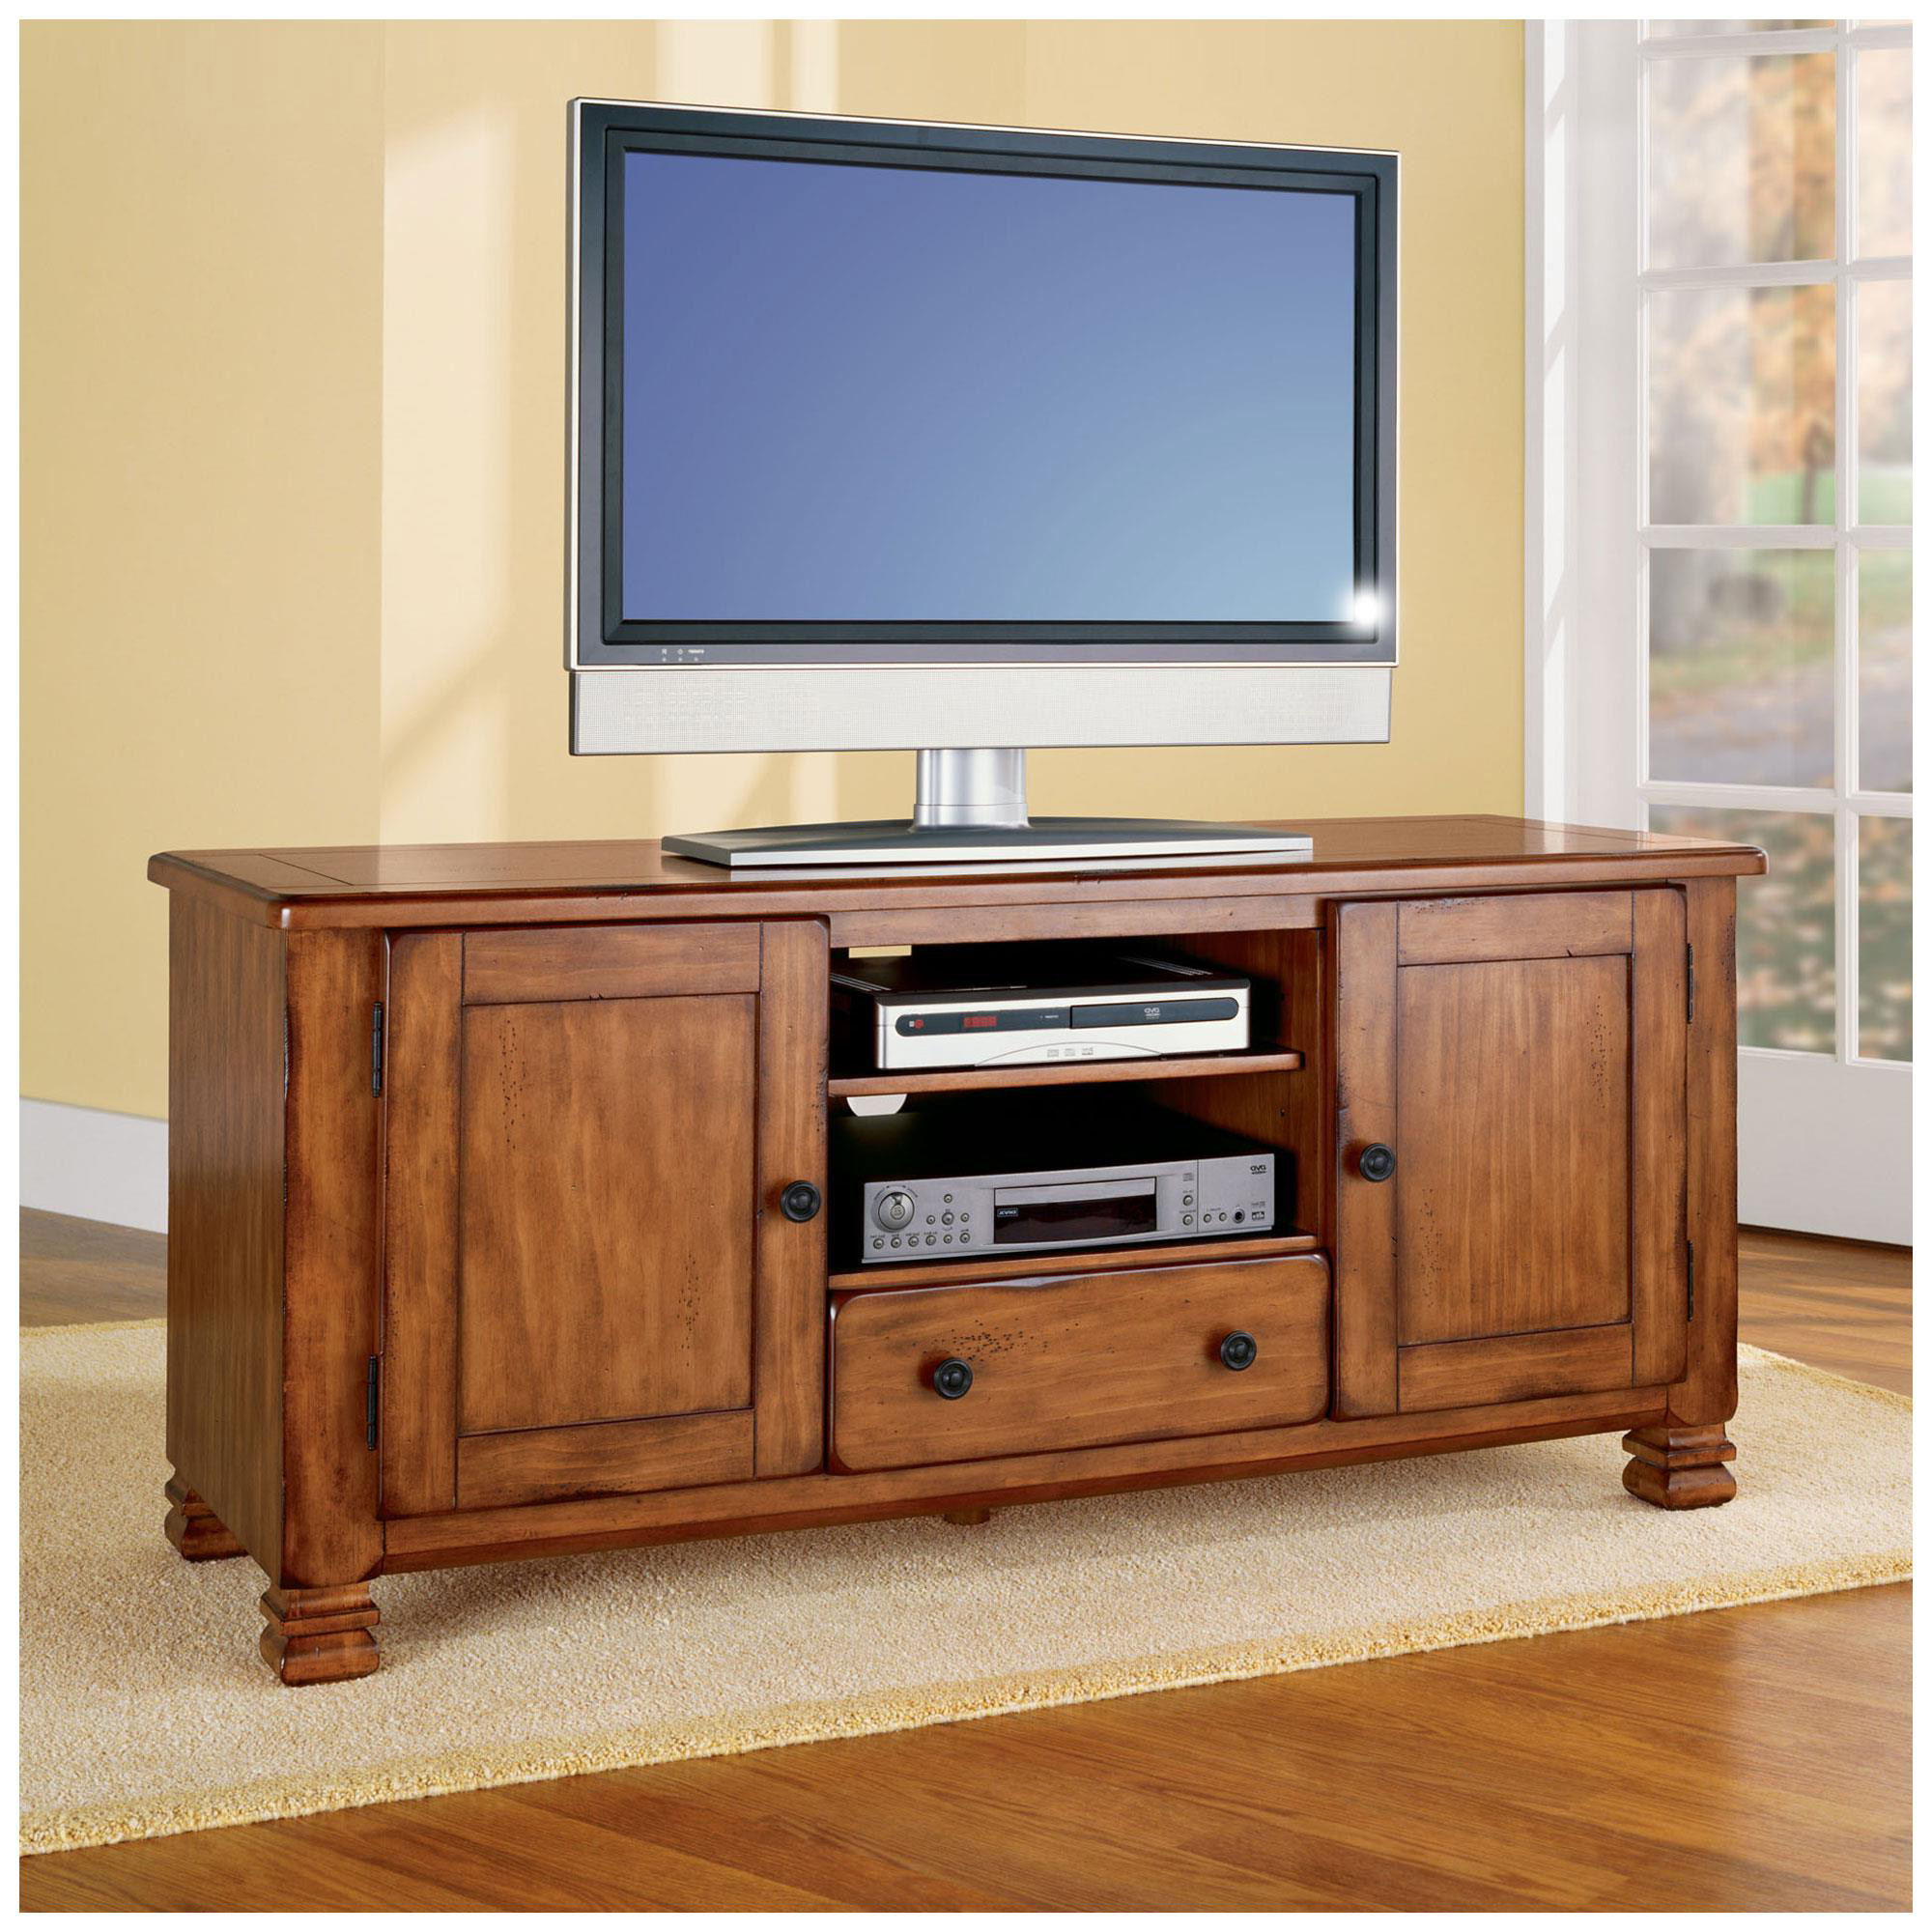 Oak Tv Stand Walmart Solid Wood Stands For Flat Screens Light Regarding Widely Used Oak Tv Cabinets For Flat Screens With Doors (Gallery 6 of 20)